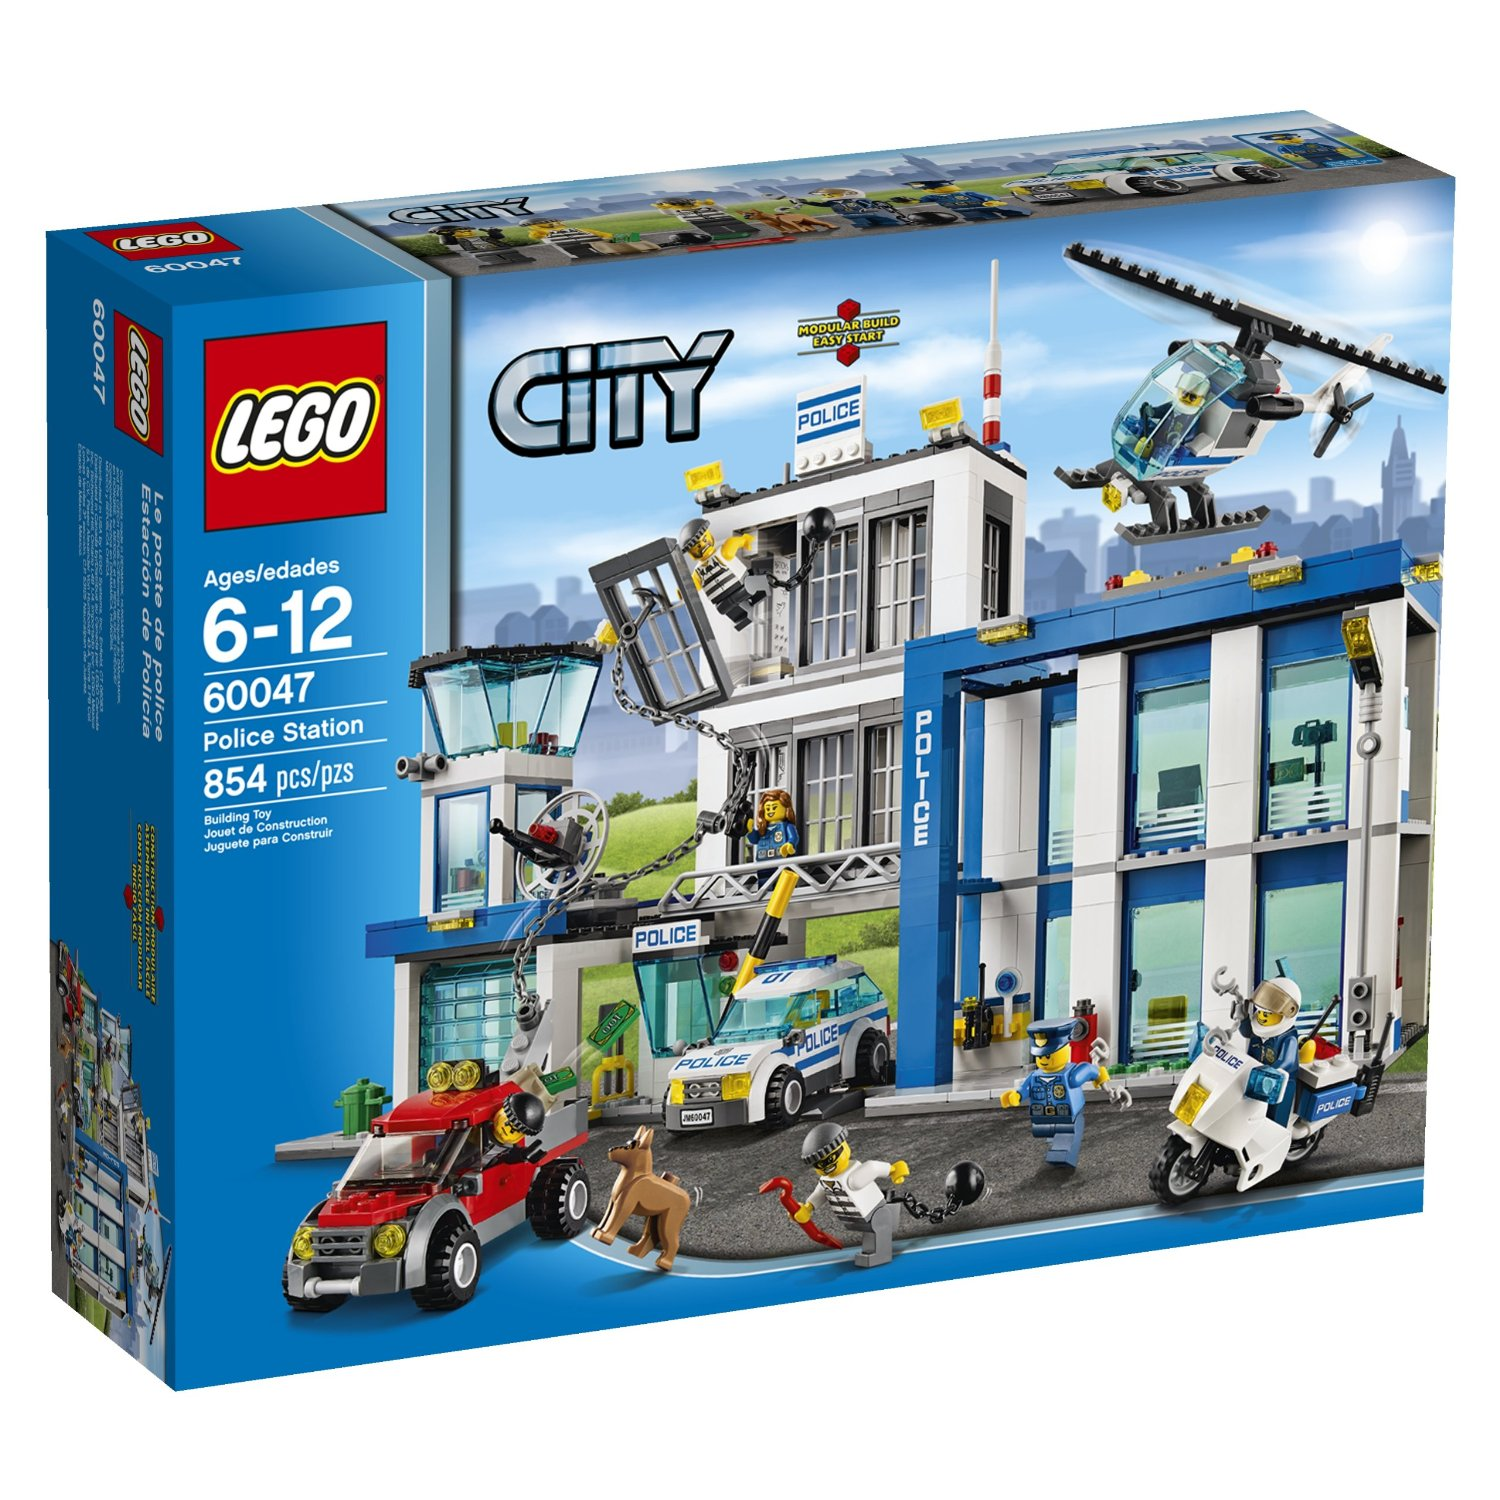 LEGO City Police Station Building Set